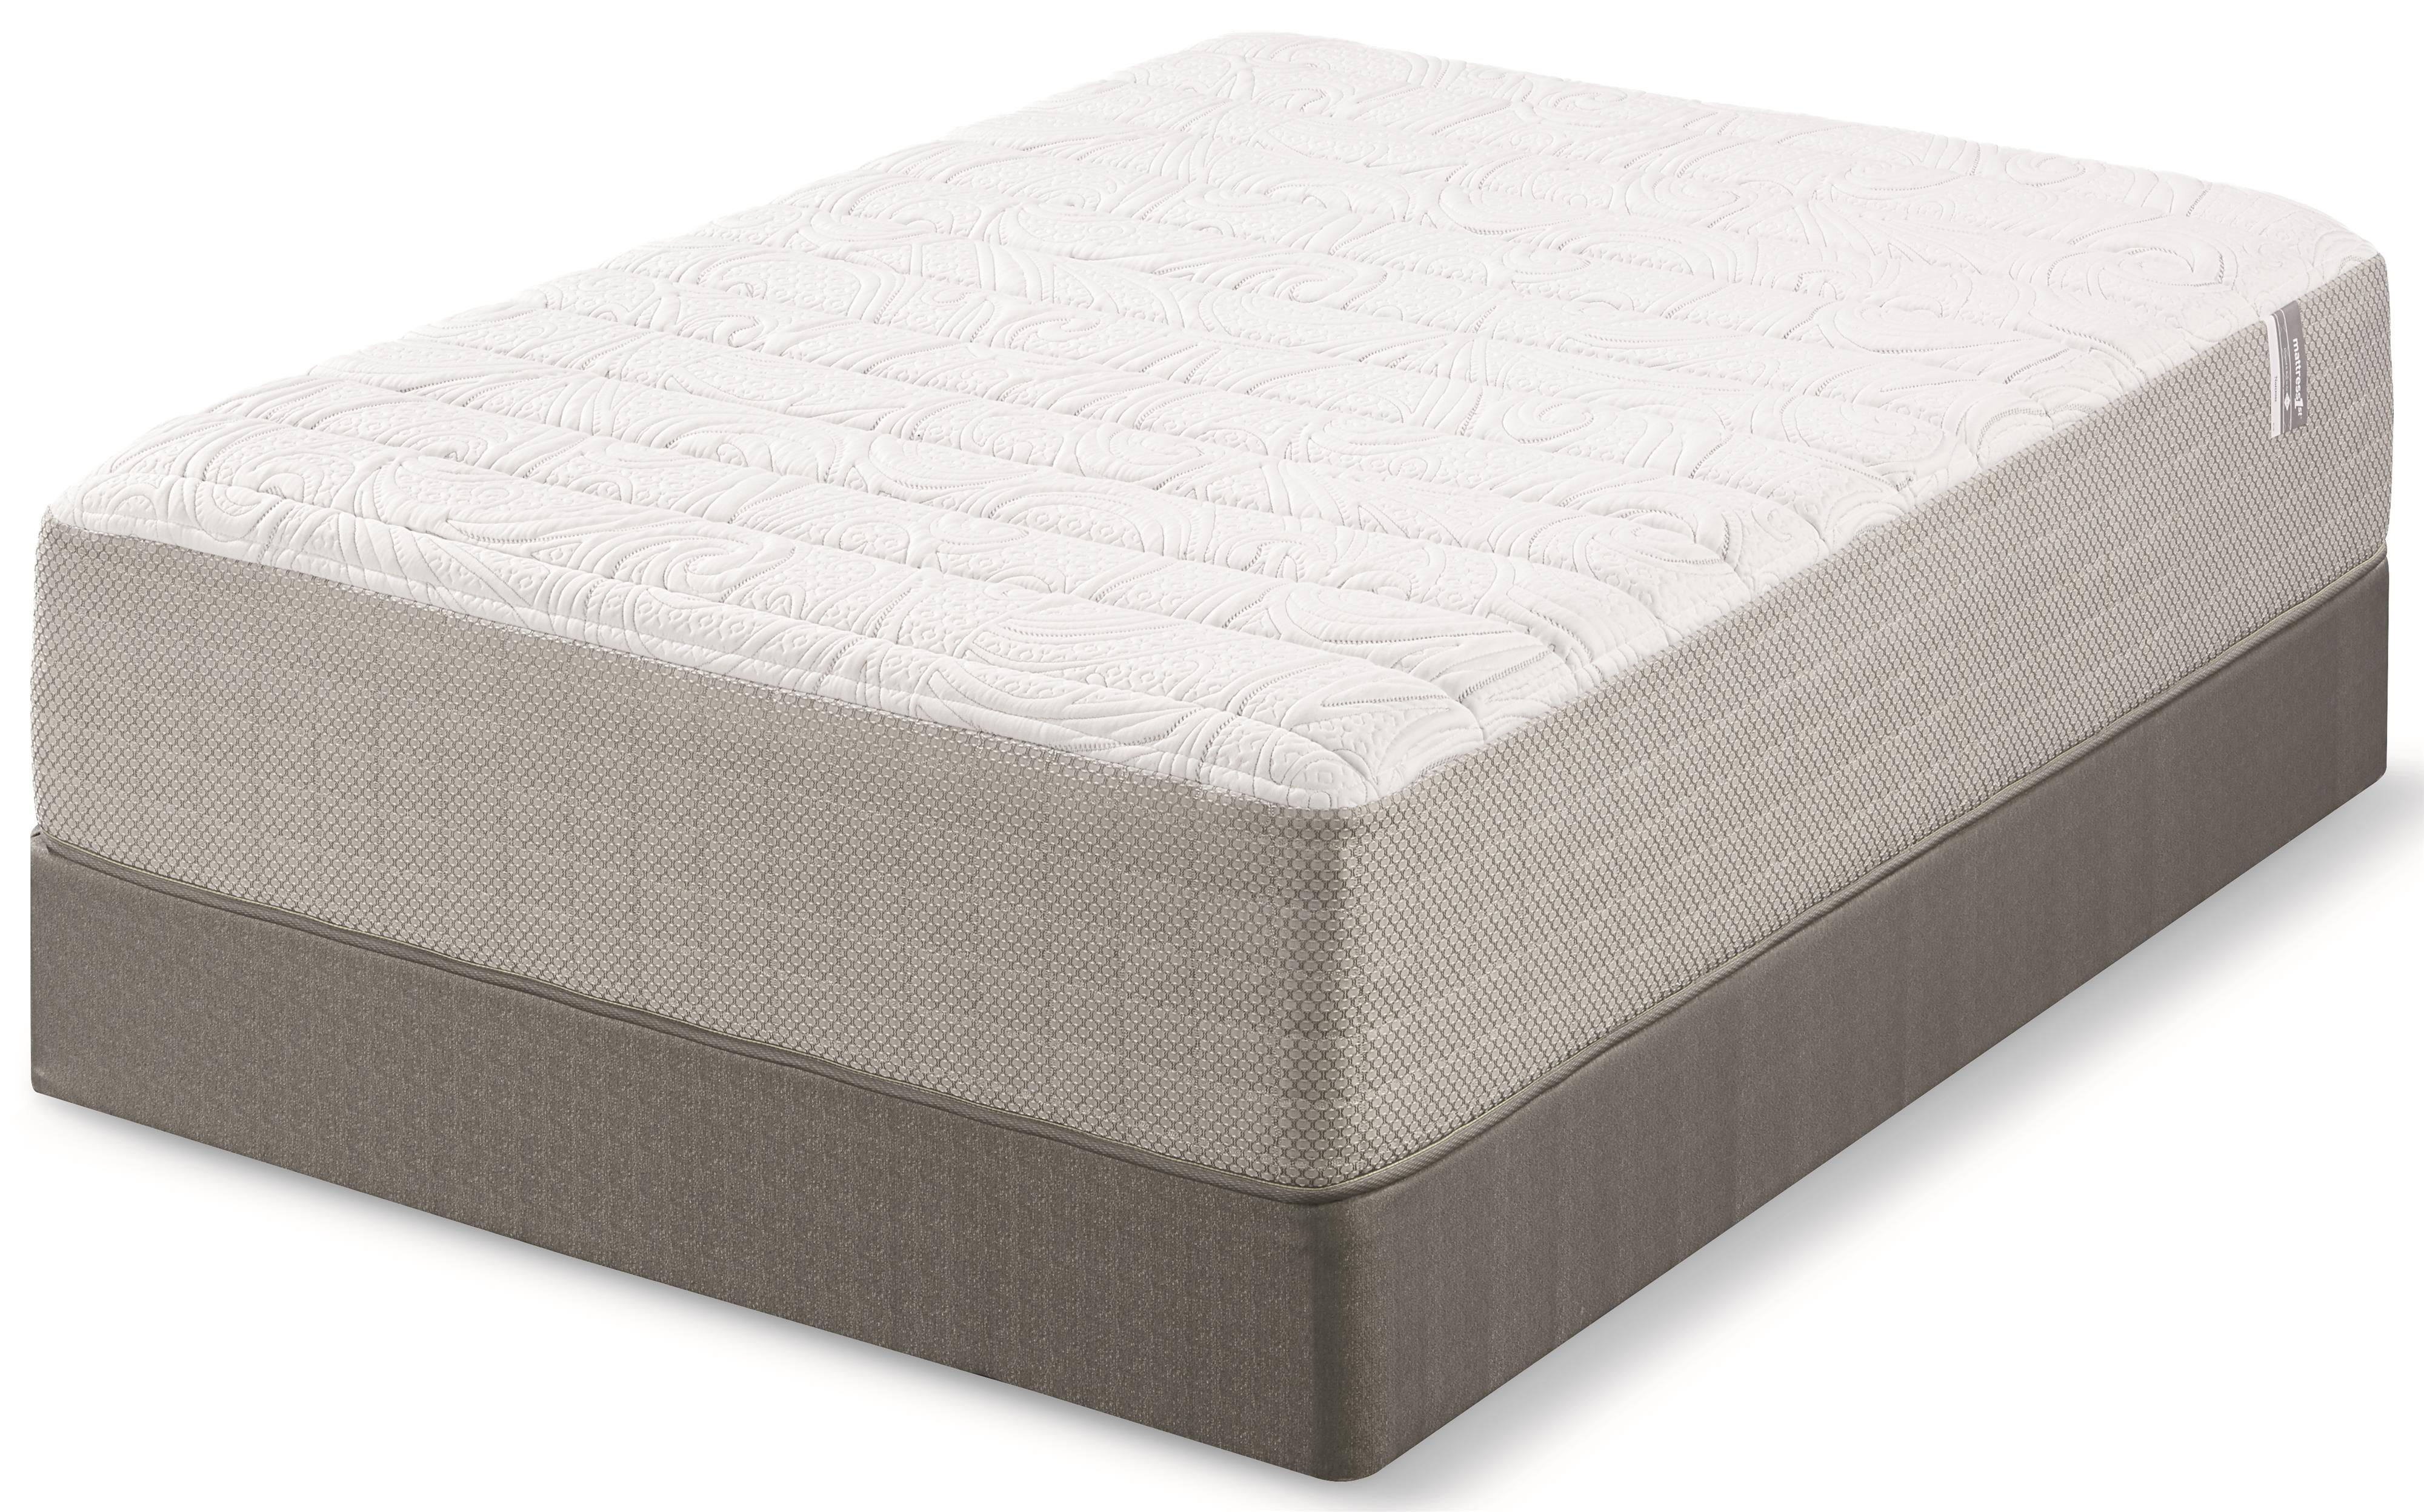 Mattress 1st Norcross Full Plush Memory Foam Mattress Set - Item Number: 500951132-F+500963299F